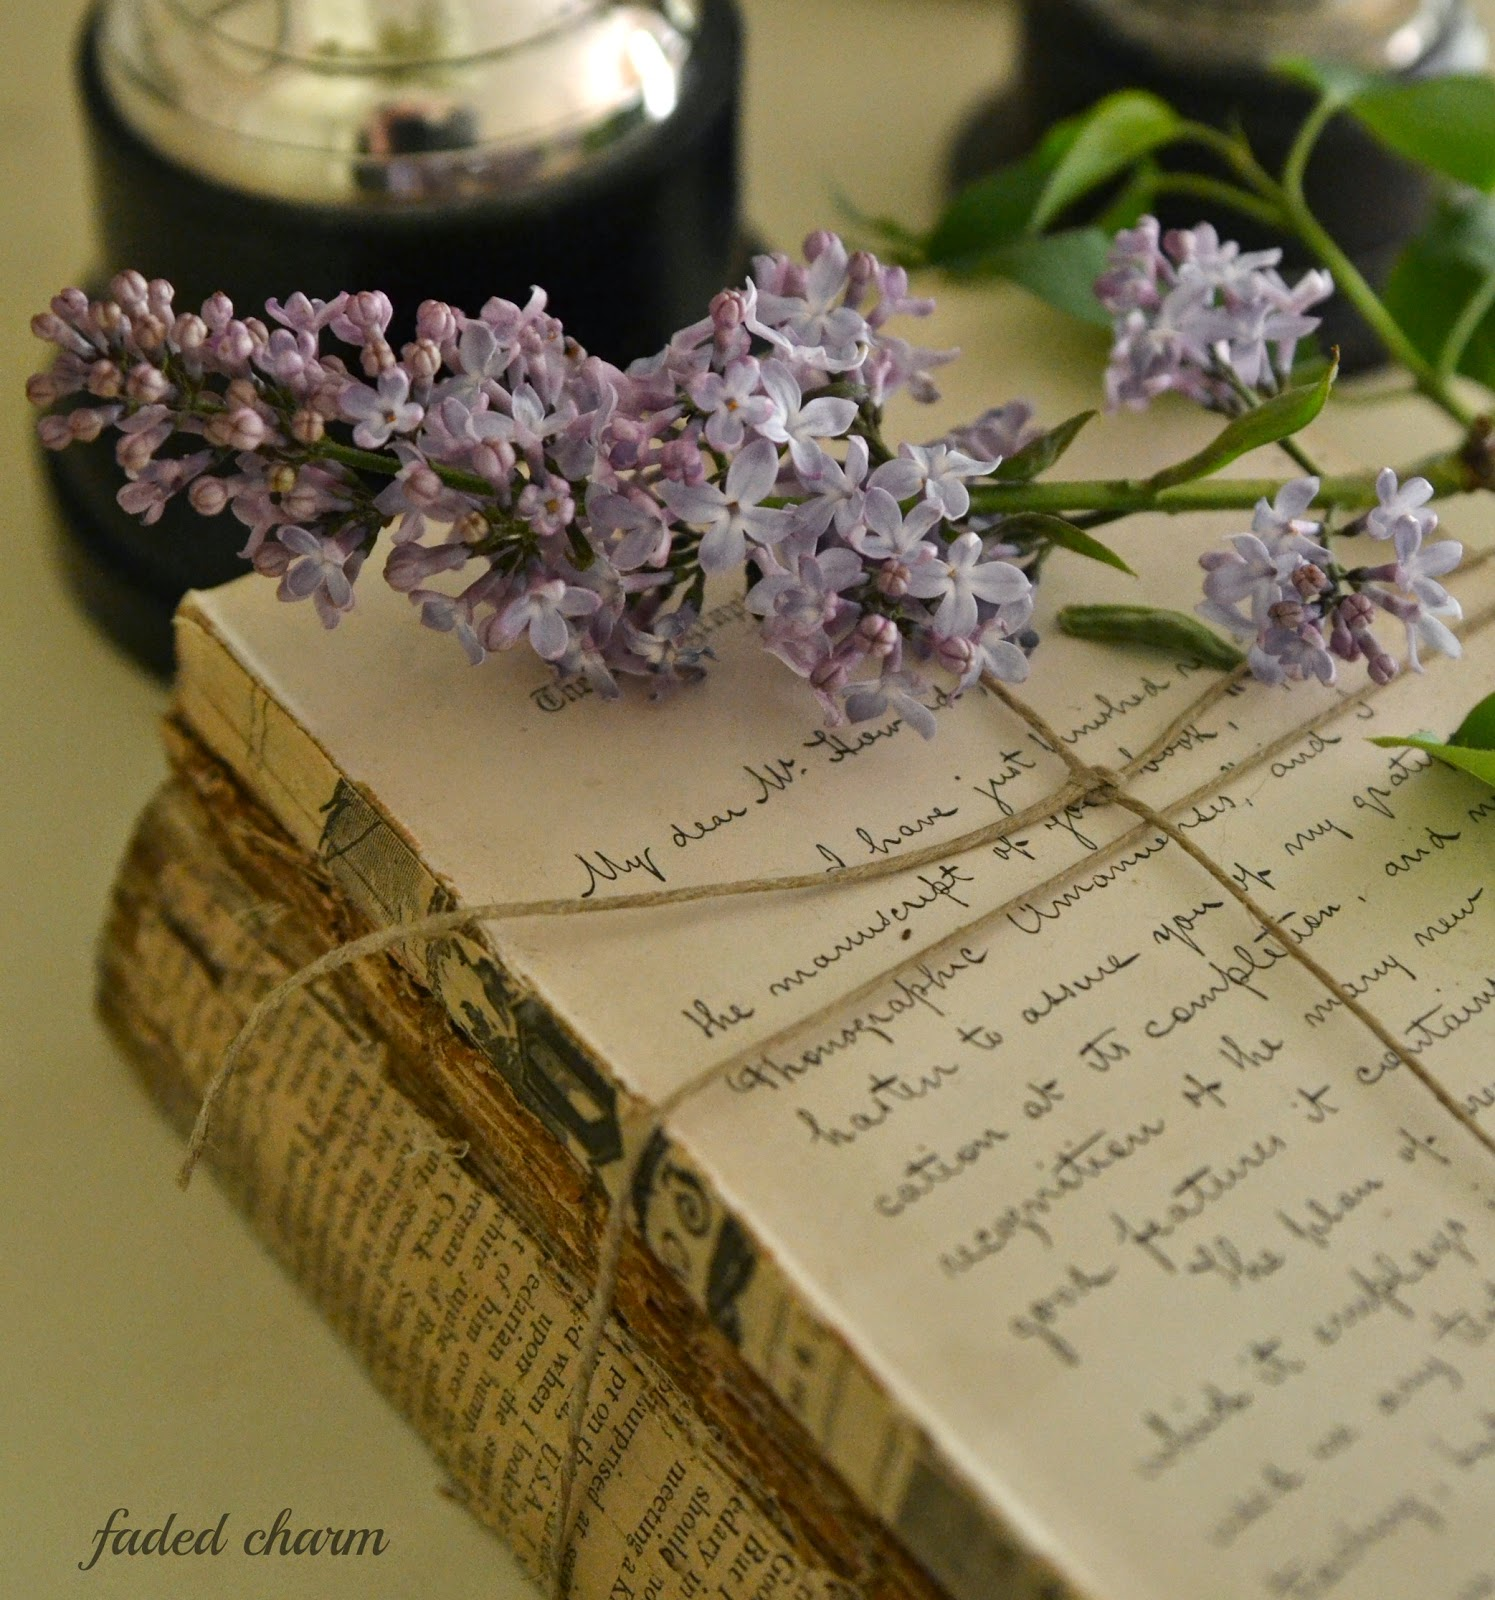 Faded Charm: ~The Sweet Scent Of Lilacs~